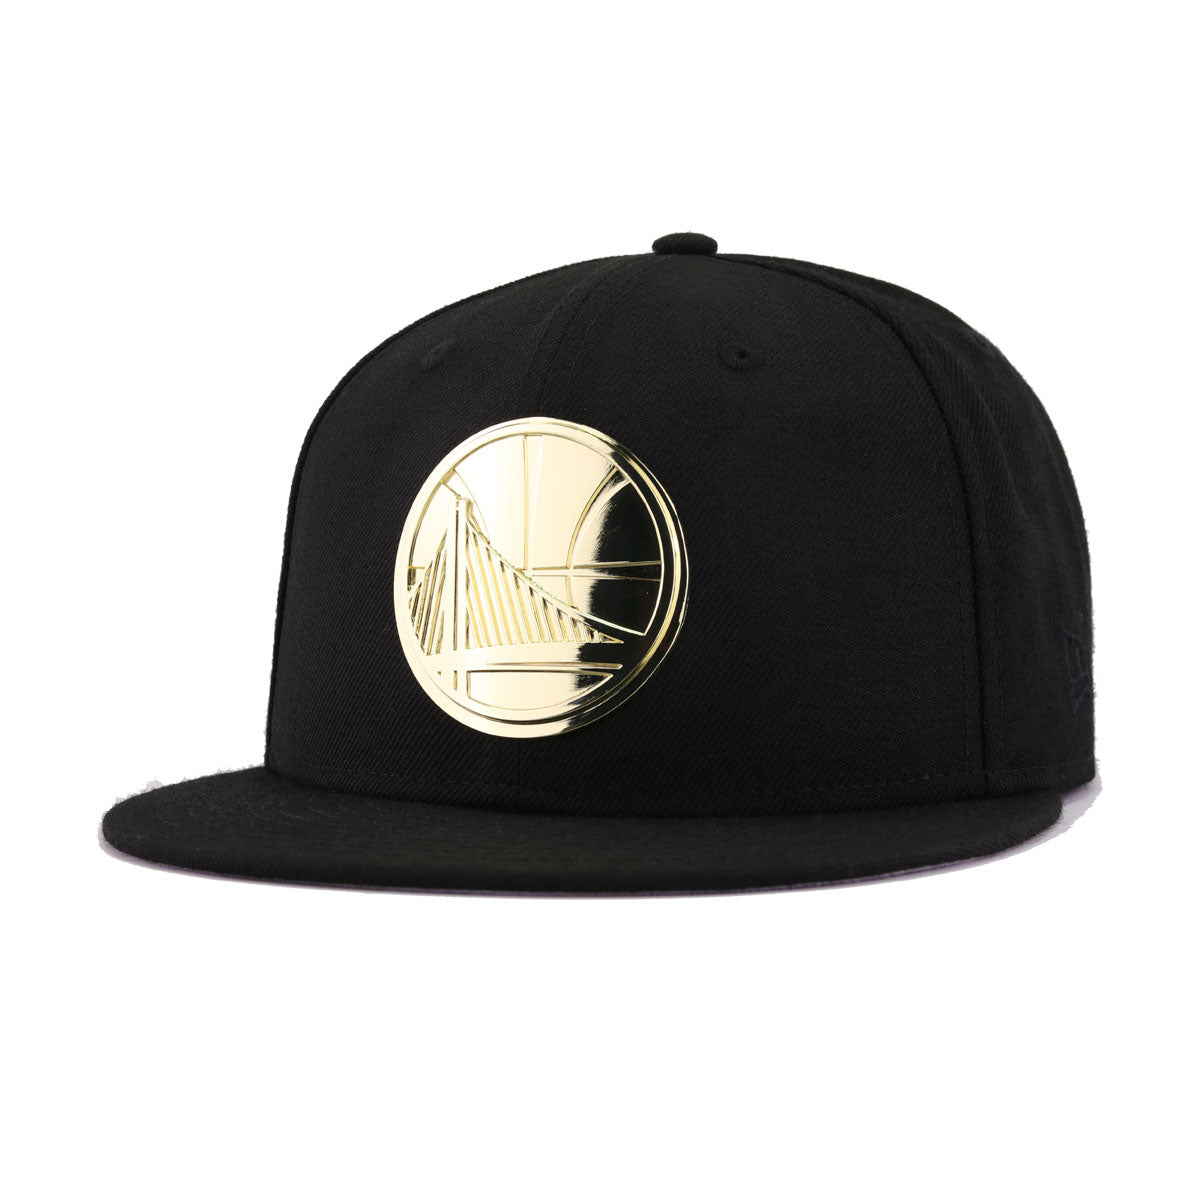 586b207a676 Golden State Warriors Black Gold Metal Badge New Era 9Fifty Snapback